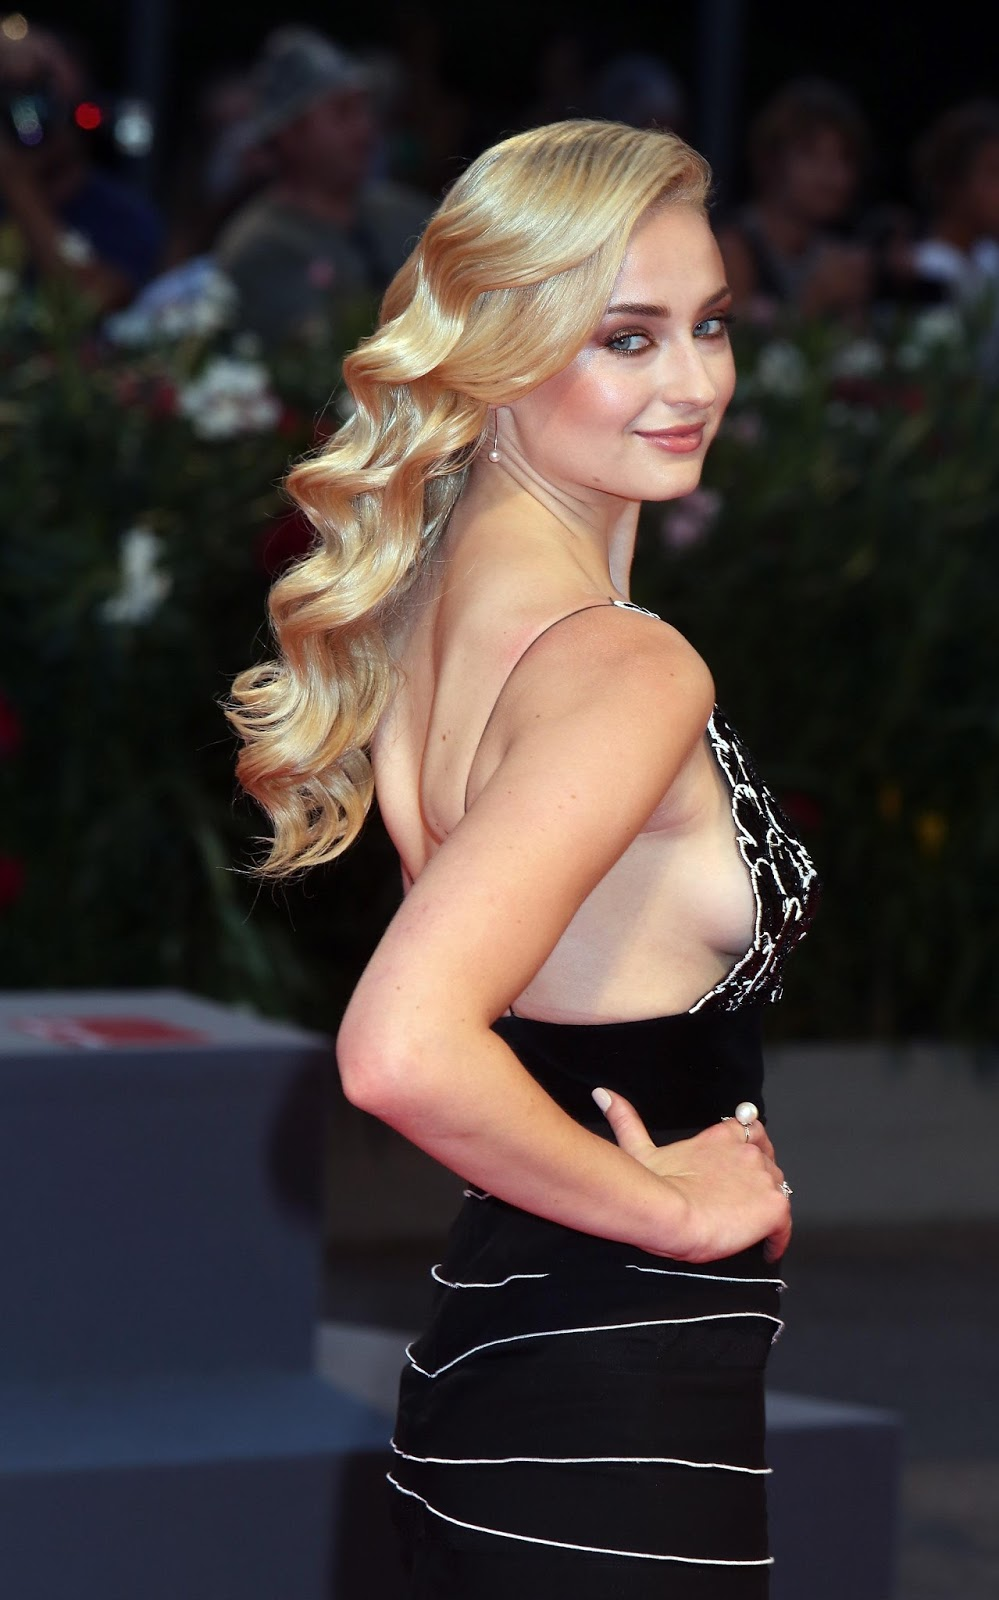 Sophie Turner learned oral sex through 'Games of Thrones'